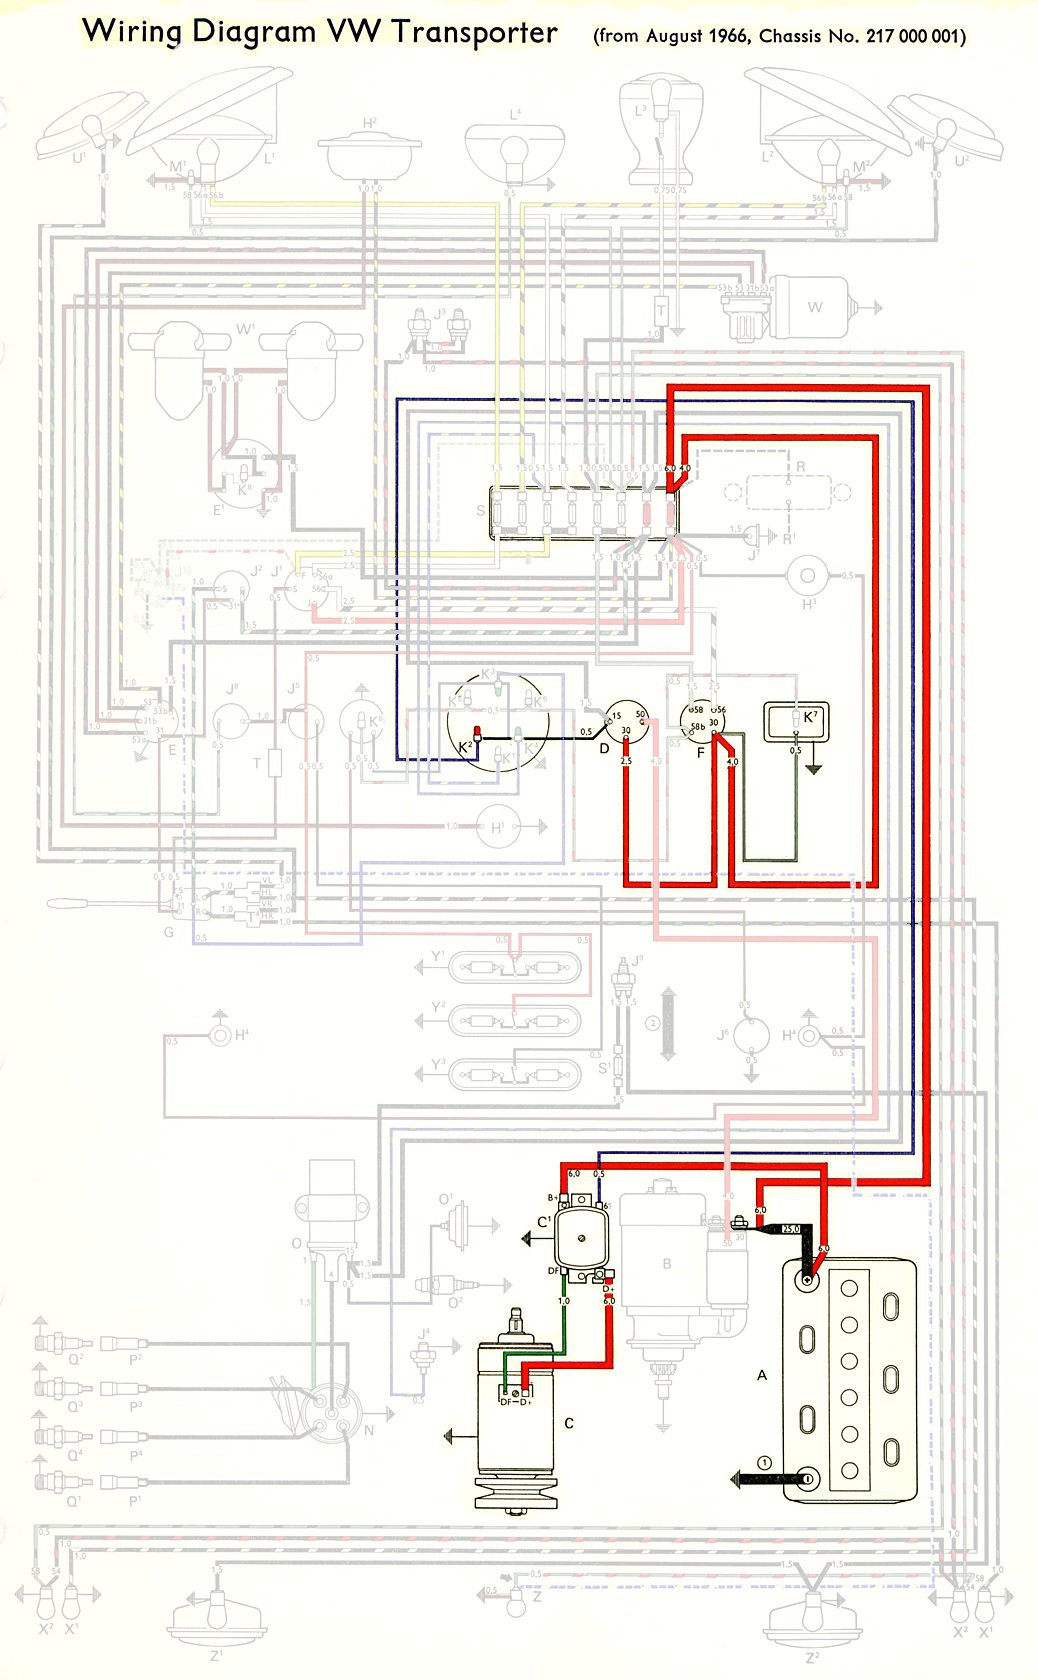 1967Bus_Eur_UnfusedSchematic Un Bus Wiring Diagram on bus service, bus sketches, bus parts diagrams, bus fuses, aircraft control system diagrams, bus suspension diagrams, bus steering, bus body diagrams,